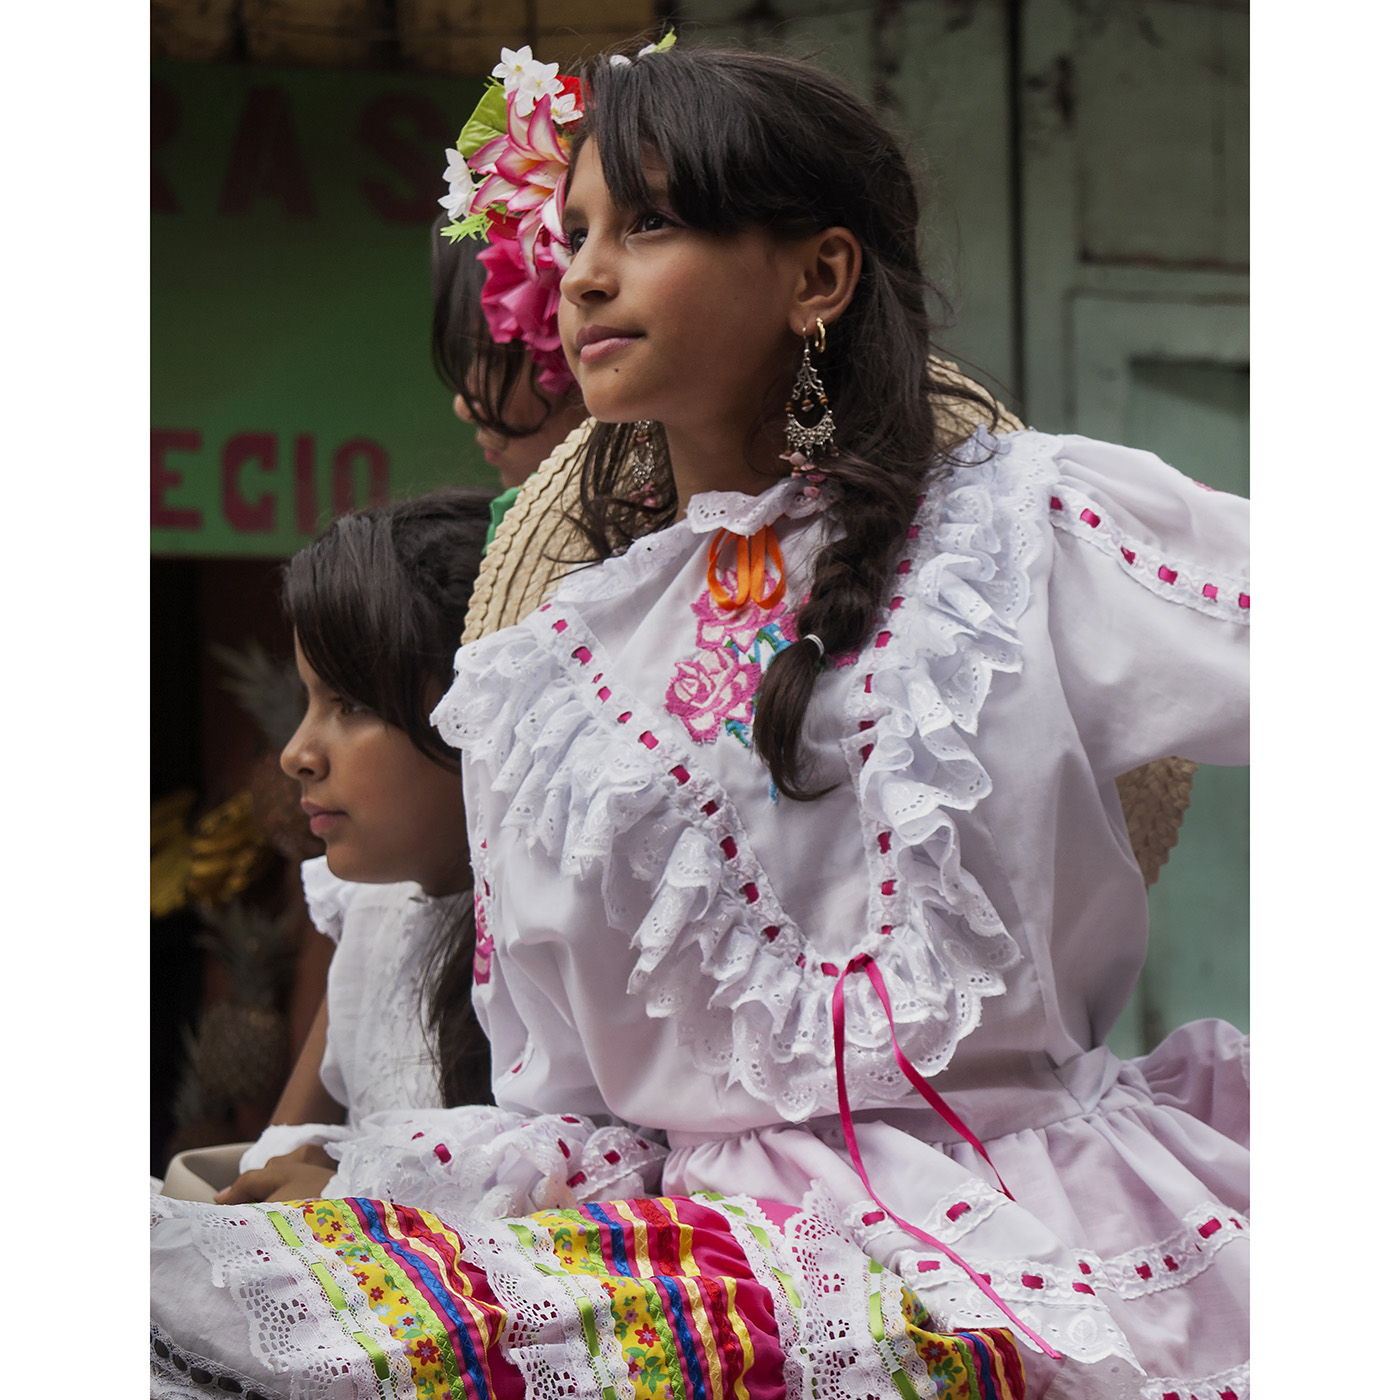 A girl wears a traditional festival dress during a parade in Libano, Colombia.